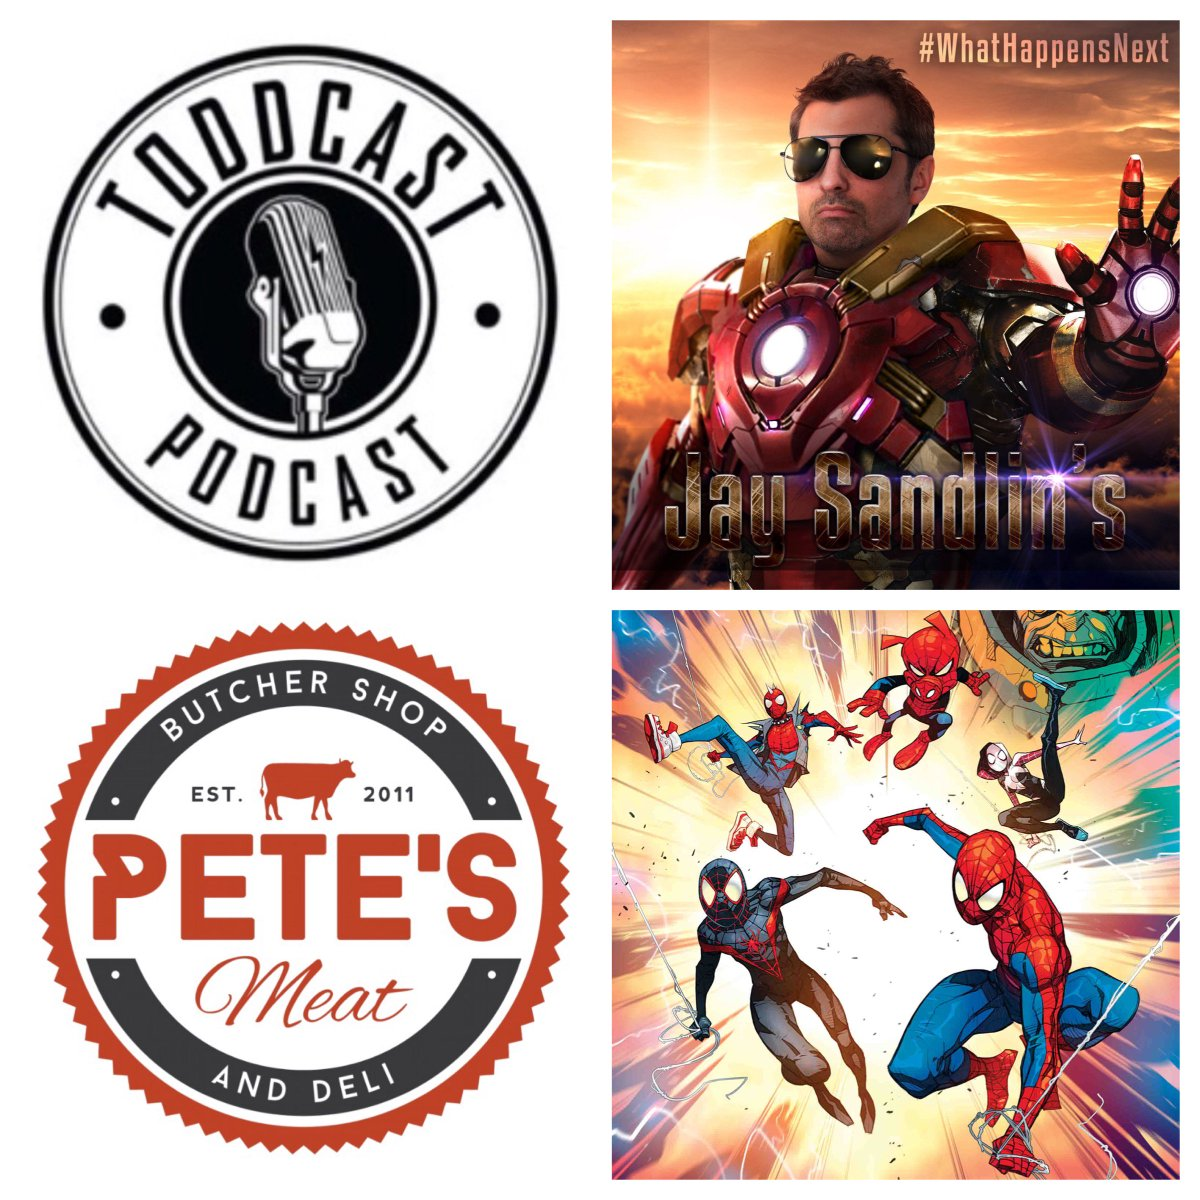 #ComicBook writer / #WhatHappensNext host @JaySandlin_WHN is a guest Sept.24 and we talked about the amazing #SpiderMan Into The #SpiderVerse. ow.ly/b5c930pxfAR * @Petesmeats powers entertainment guest visits!